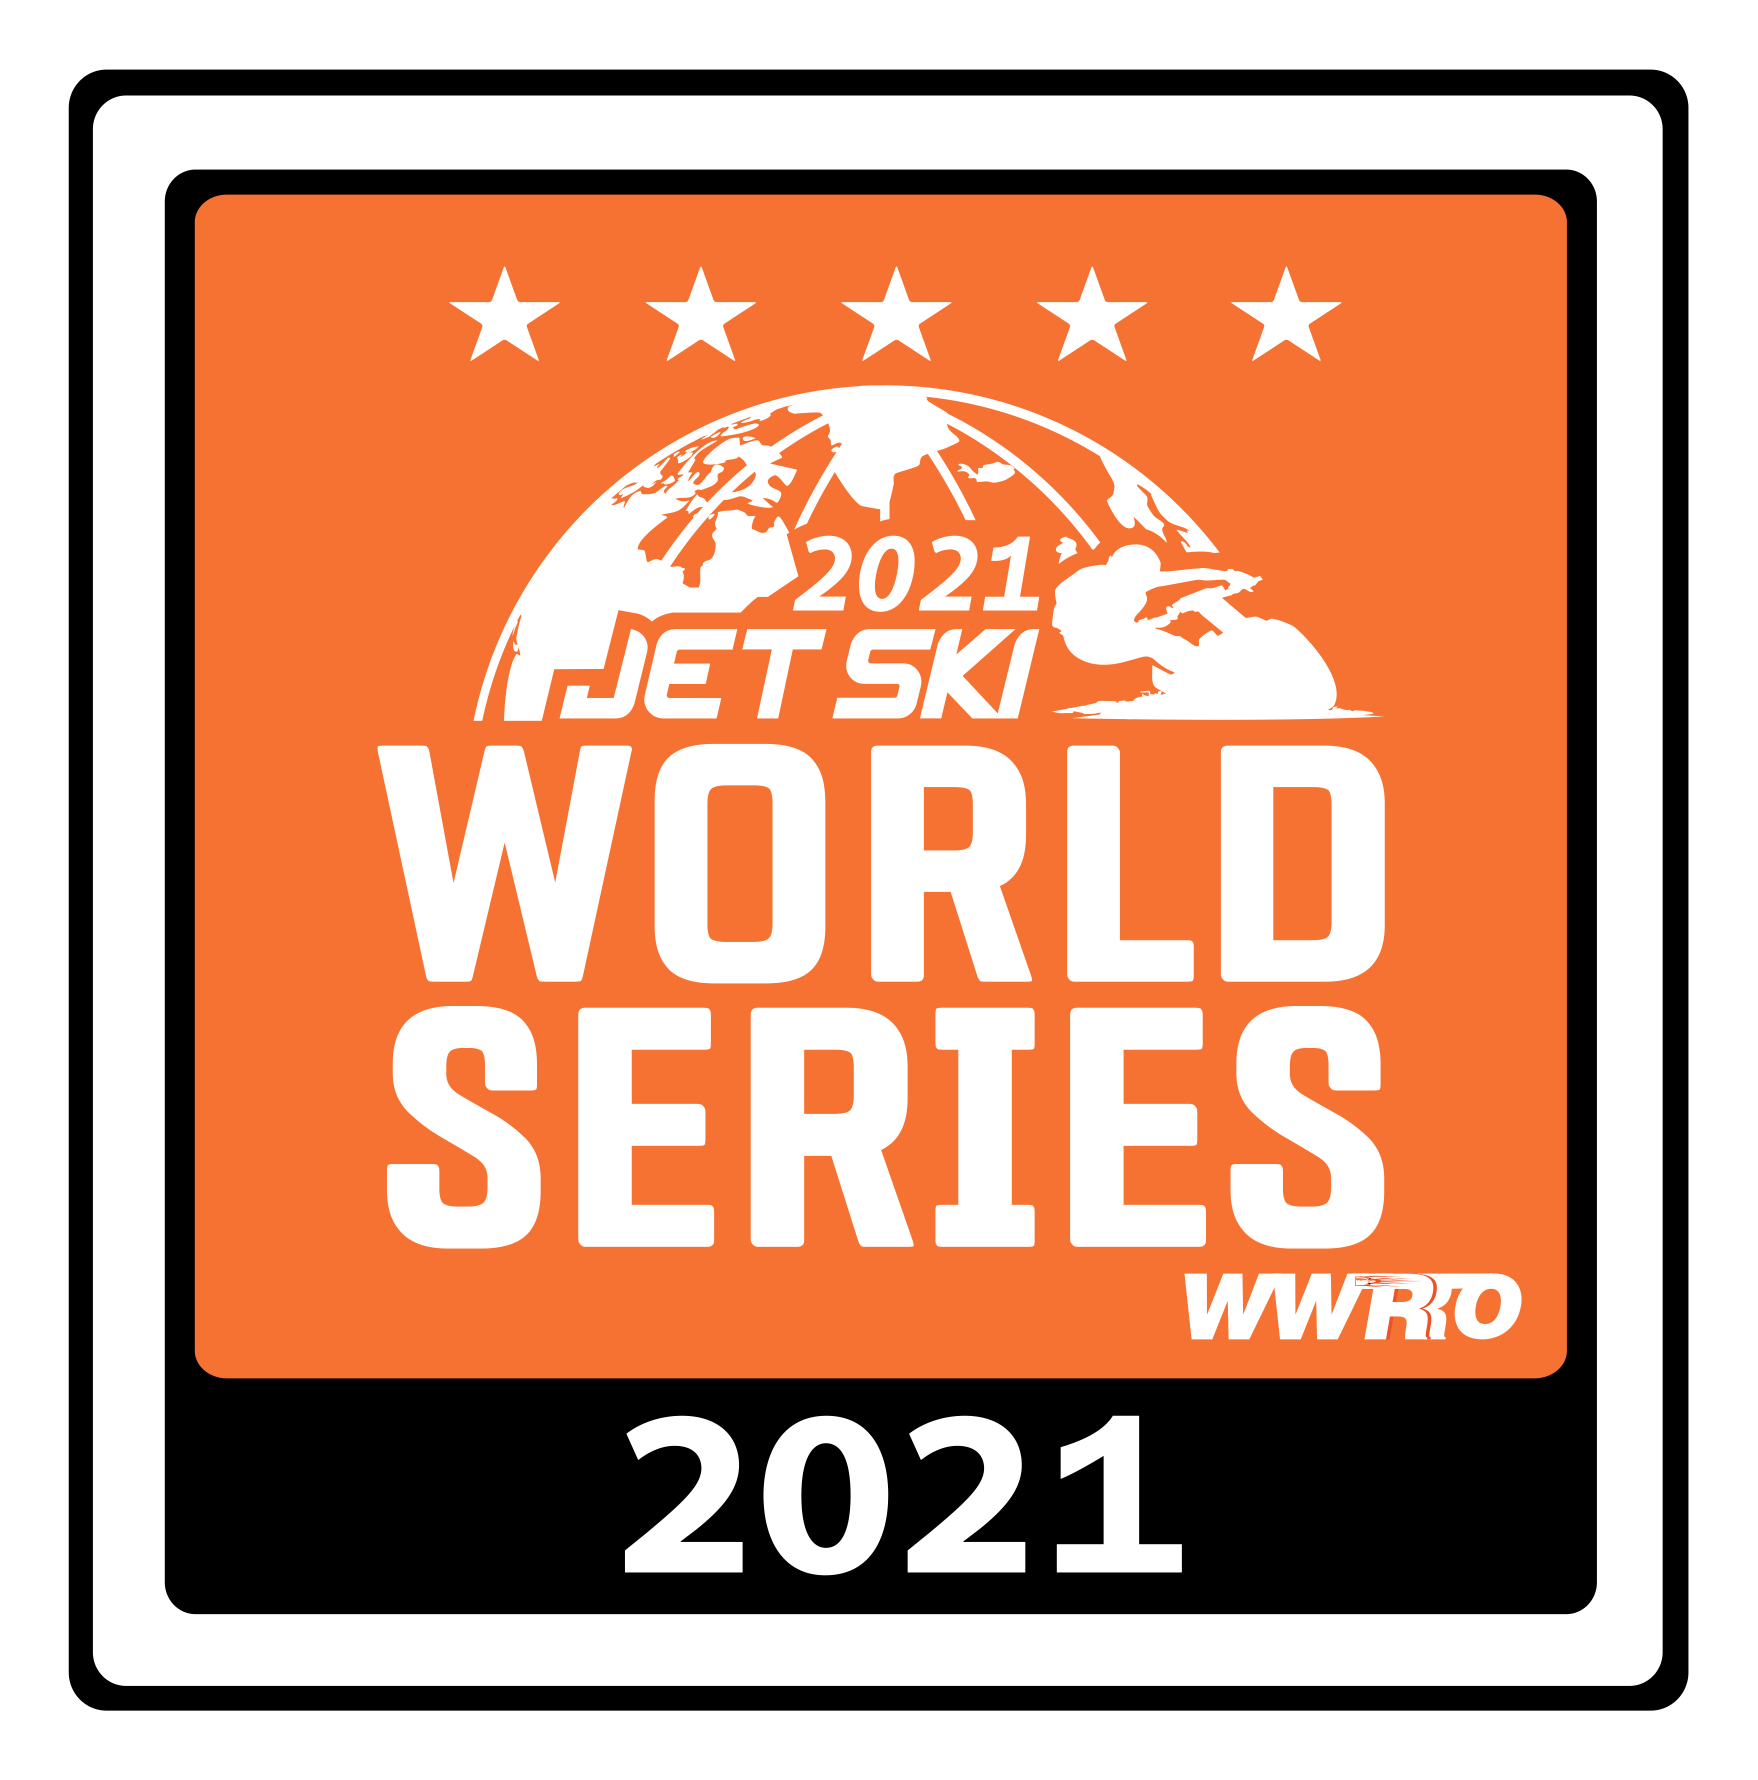 world-series-2021.png